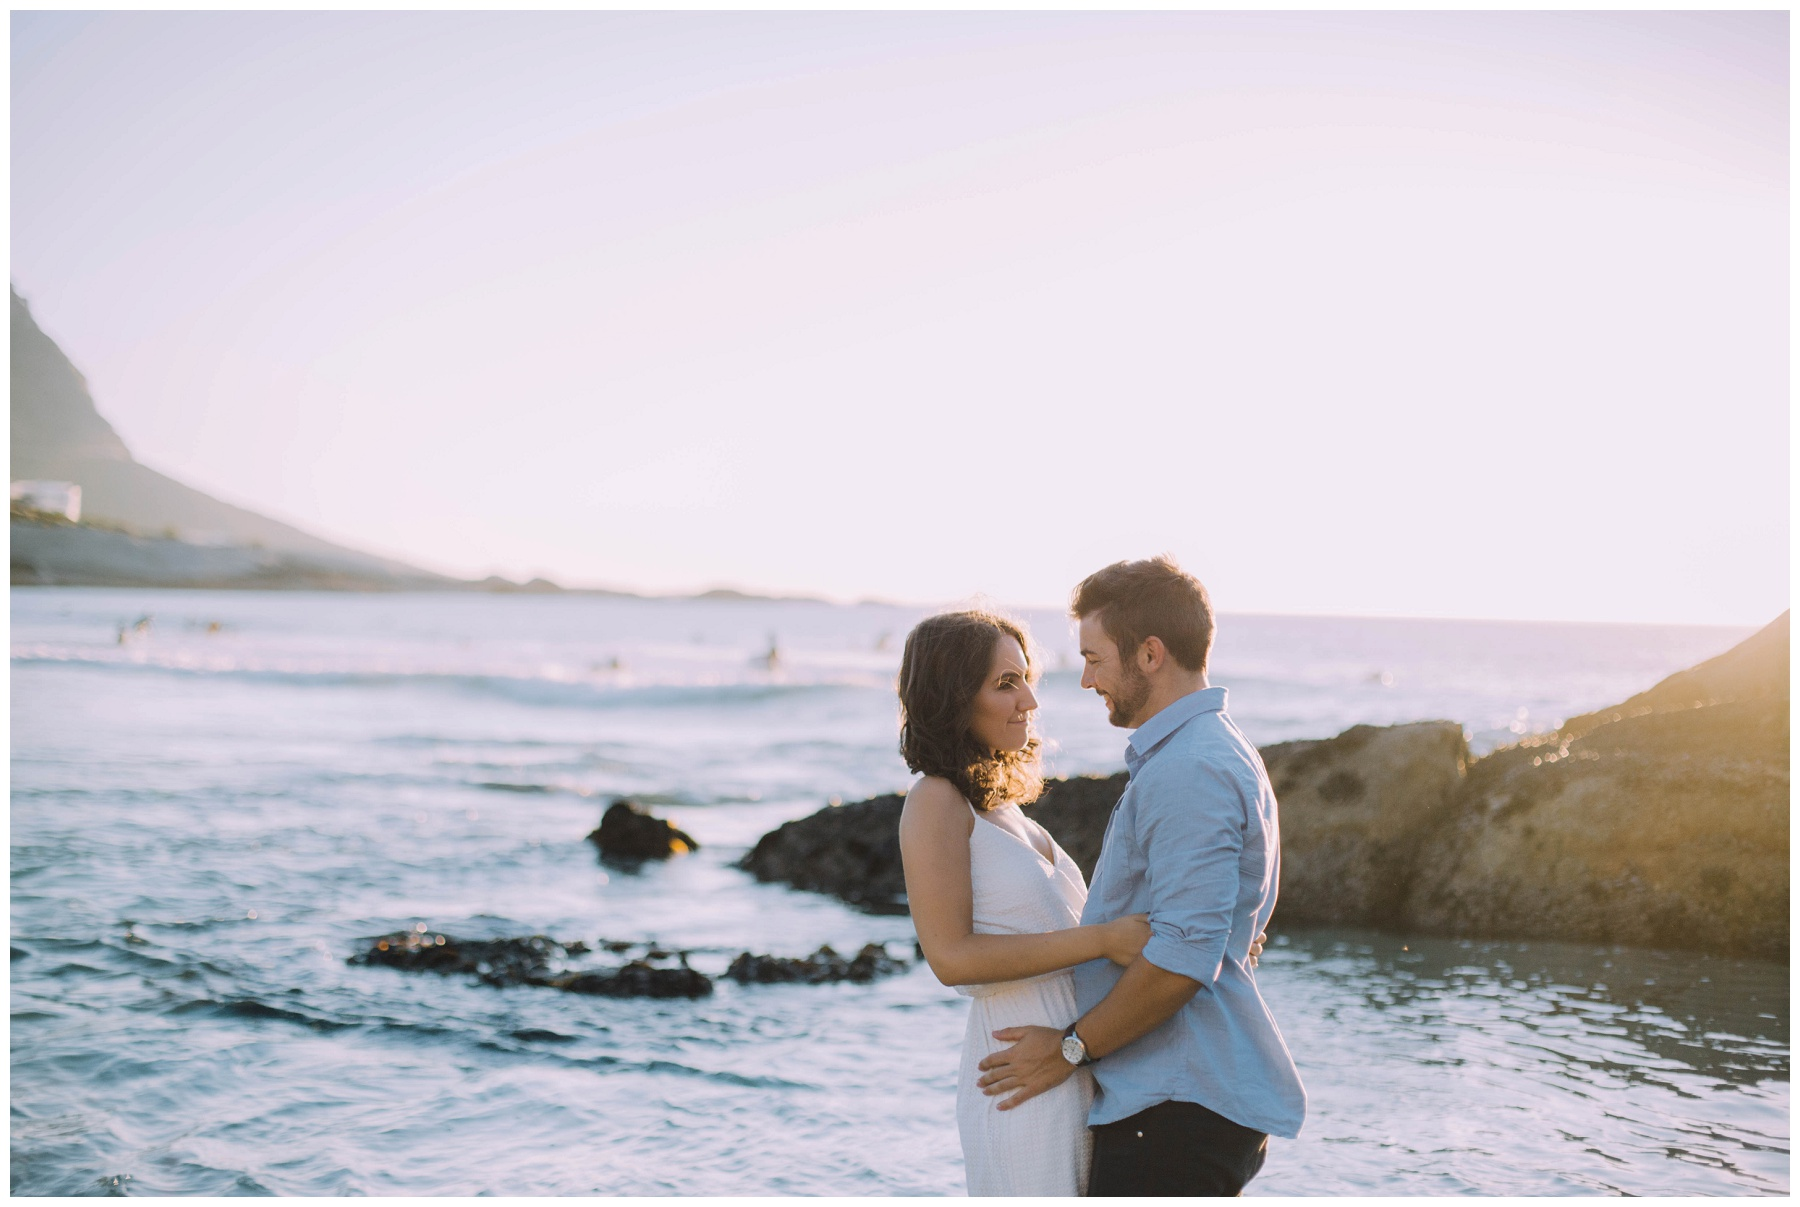 Ronel Kruger Cape Town Wedding and Lifestyle Photographer_8448.jpg